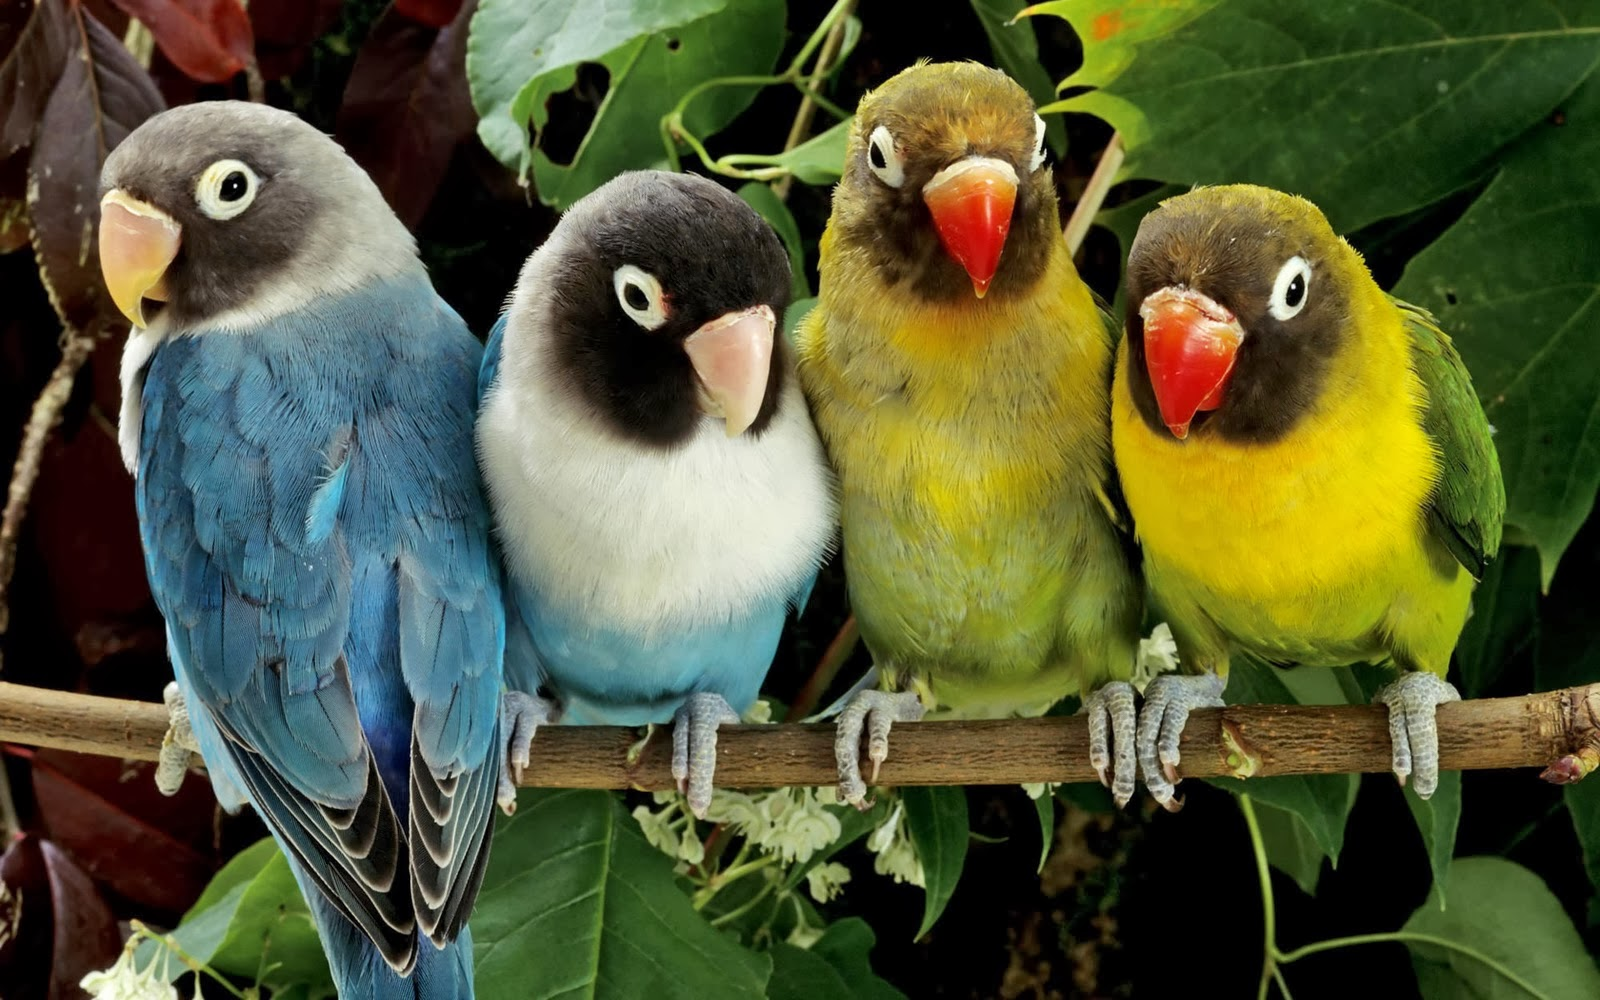 birds hd wallpapers free down load ~ hd wallpapers free download